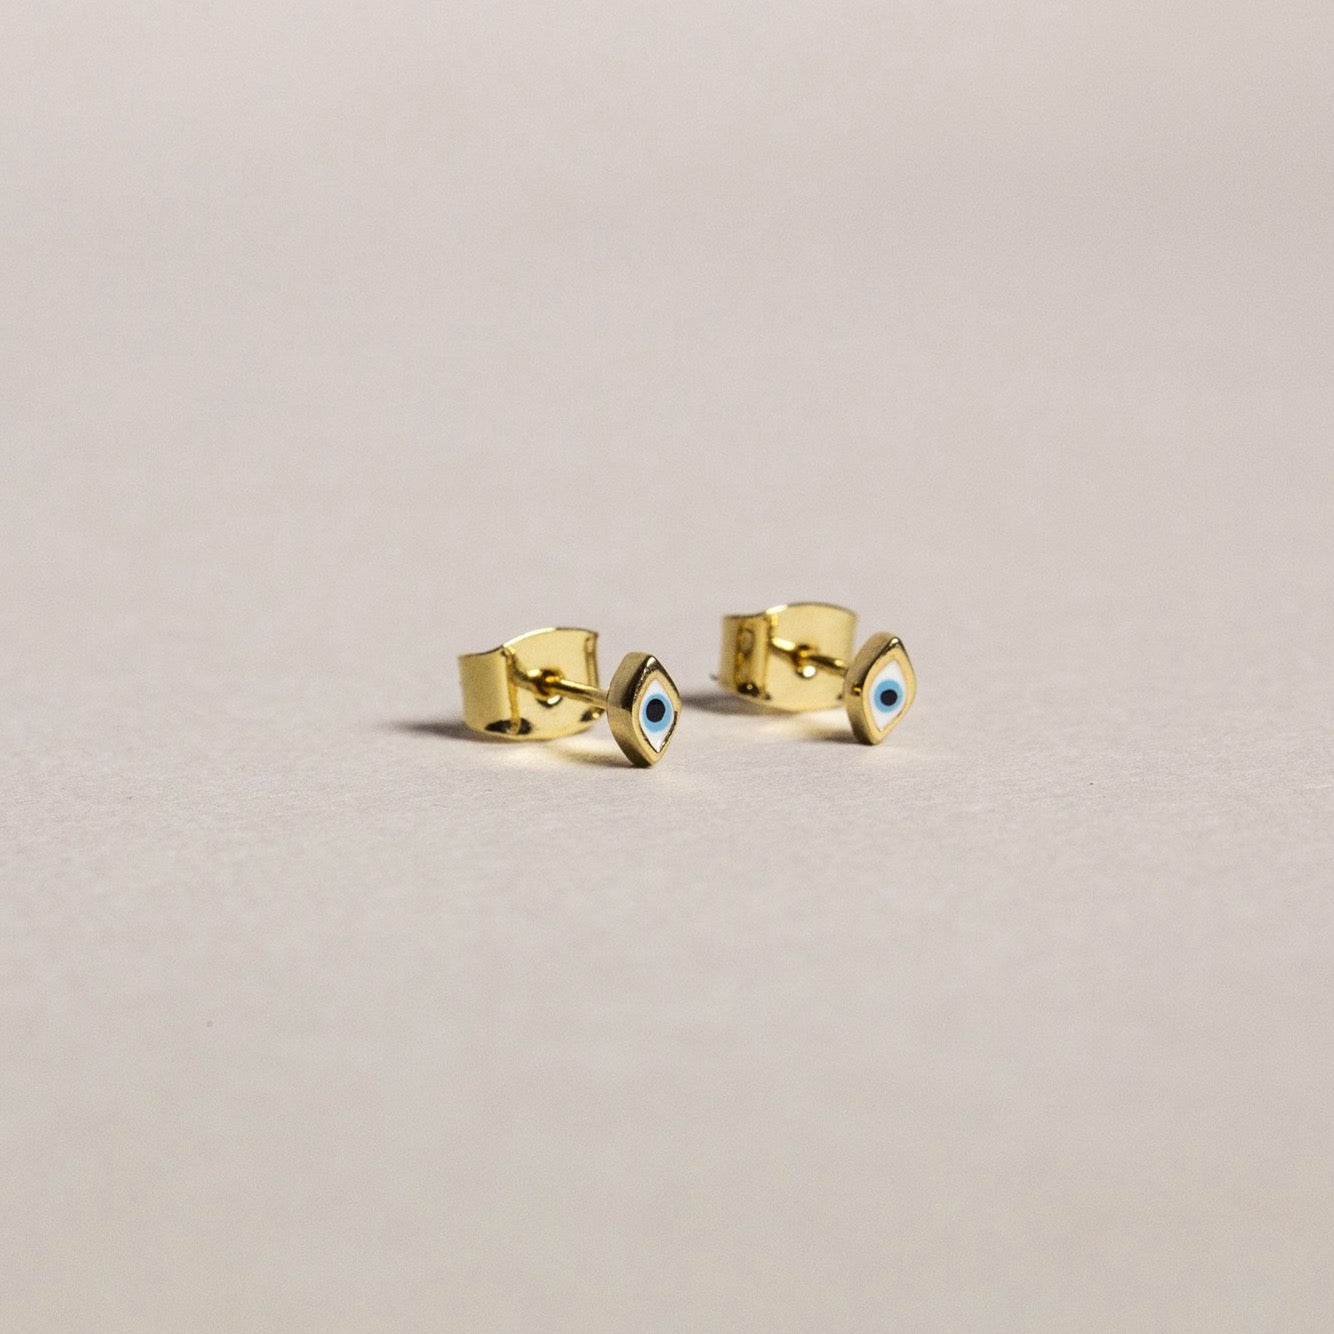 made of gold plated sterling silver, the studs are super cute size (picture with butterflies for comparison)